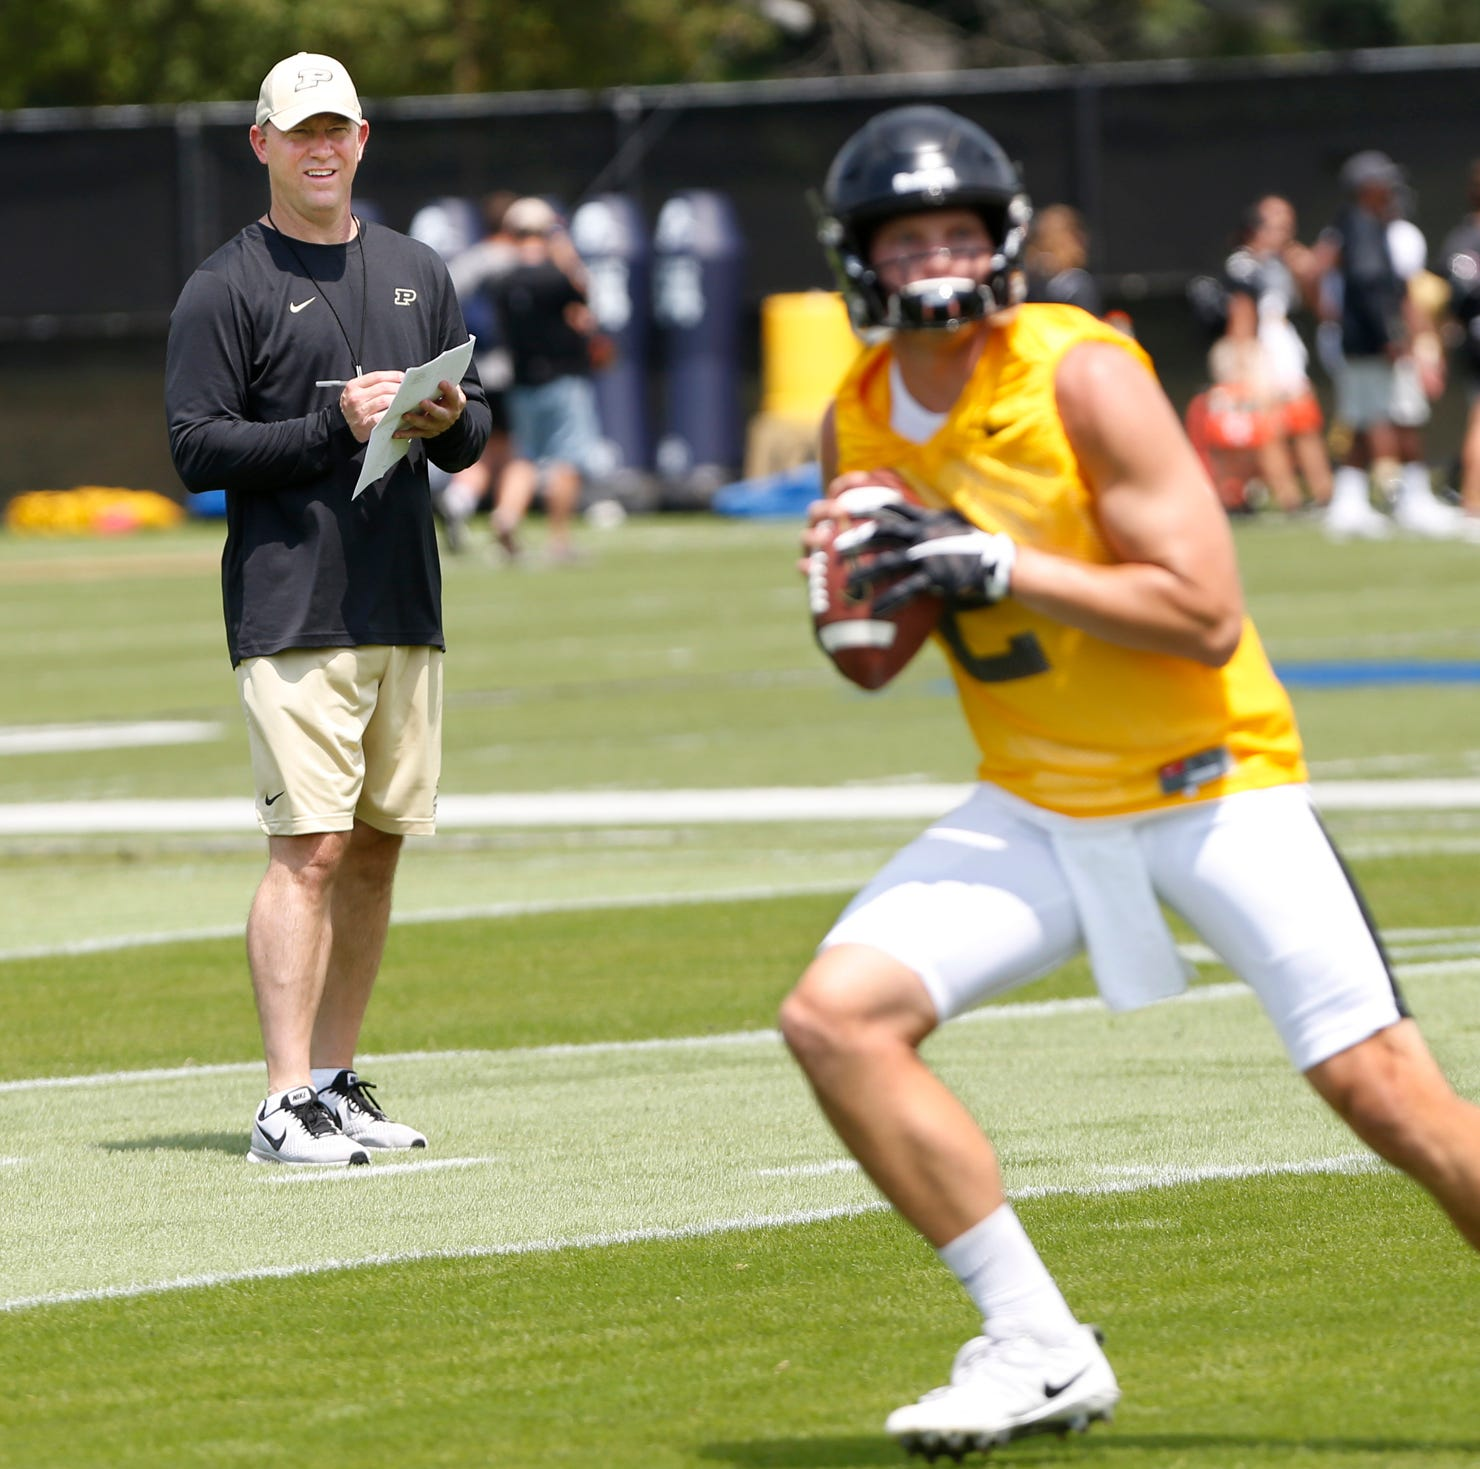 Purdue QB Elijah Sindelar eager to perform in Jeff Brohm's aggressive offense